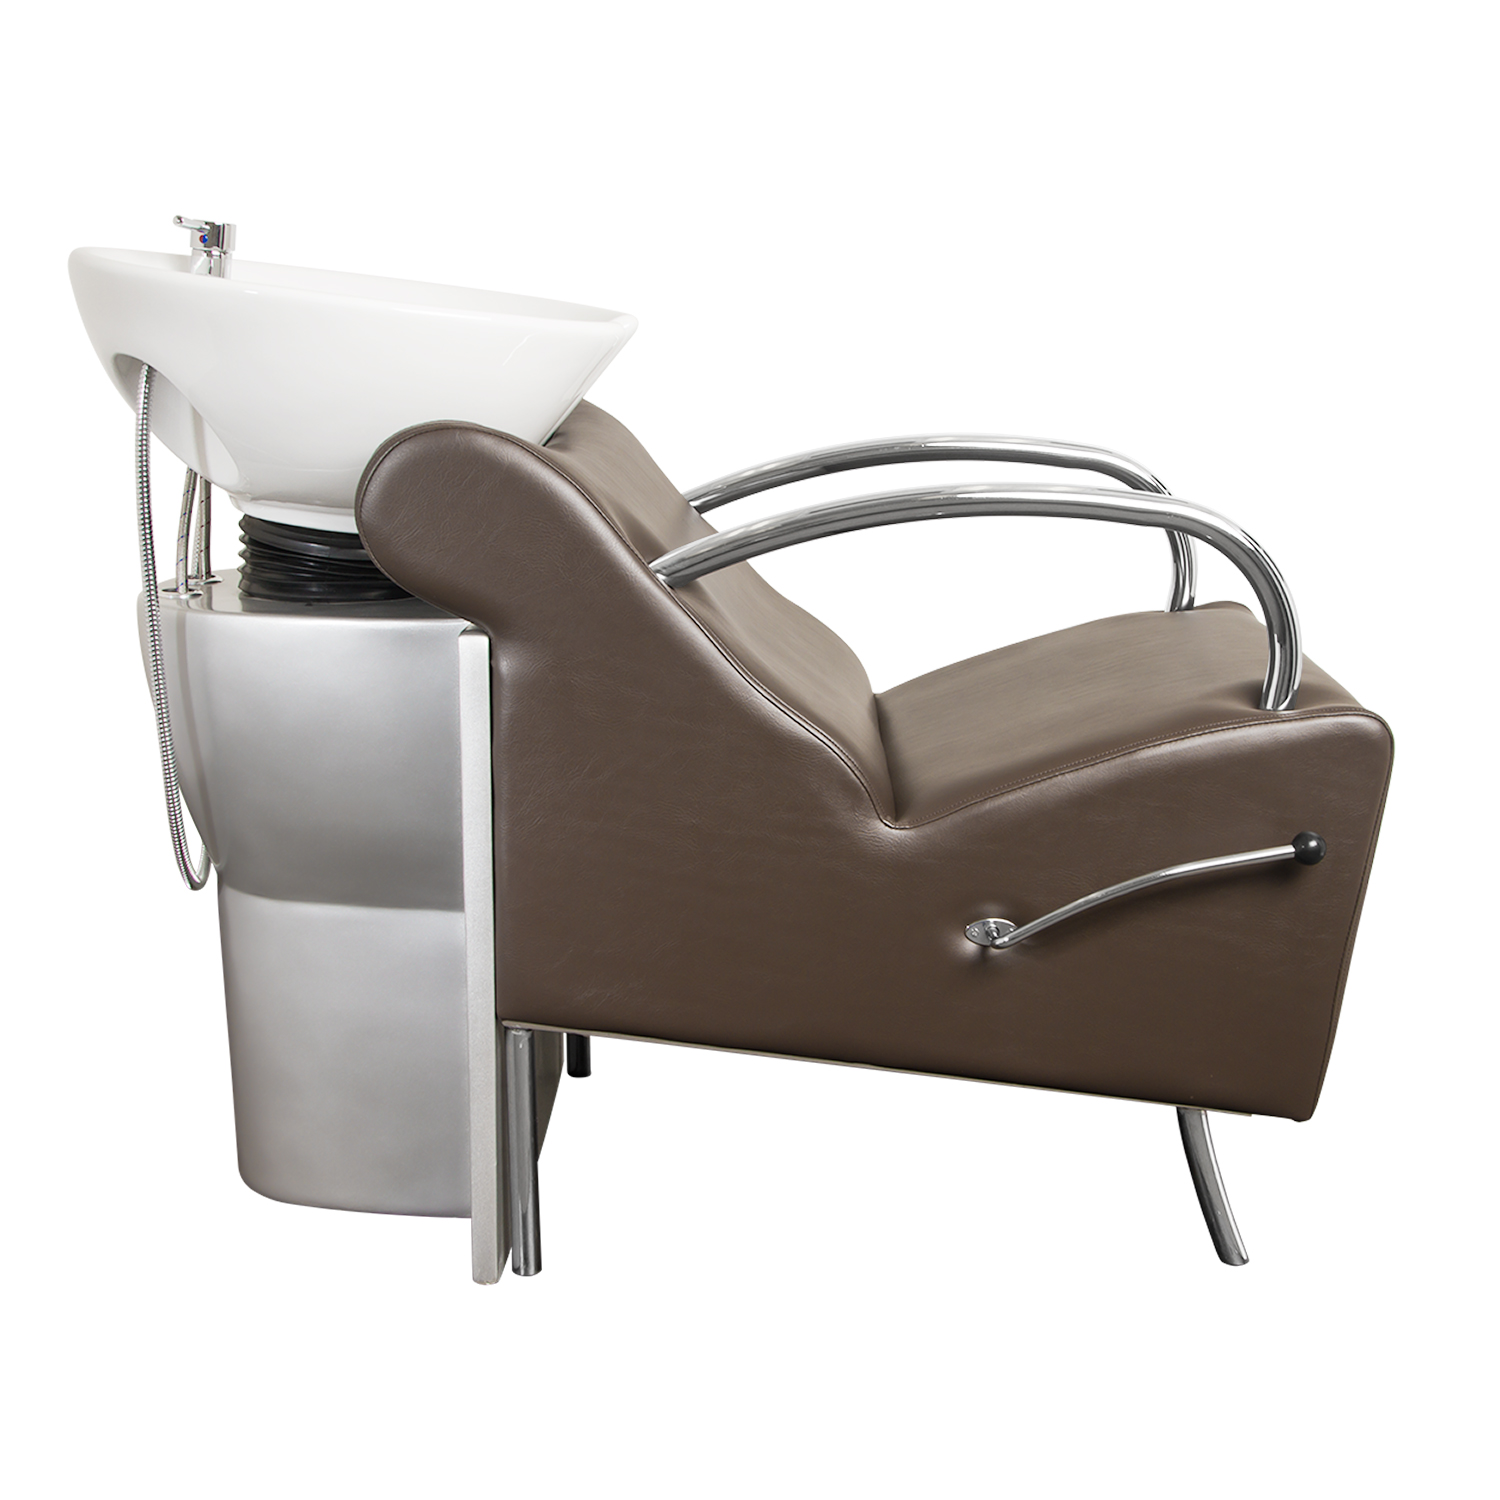 Brown Stockholm Shampoo Chair with White Bowl alternative product image 5